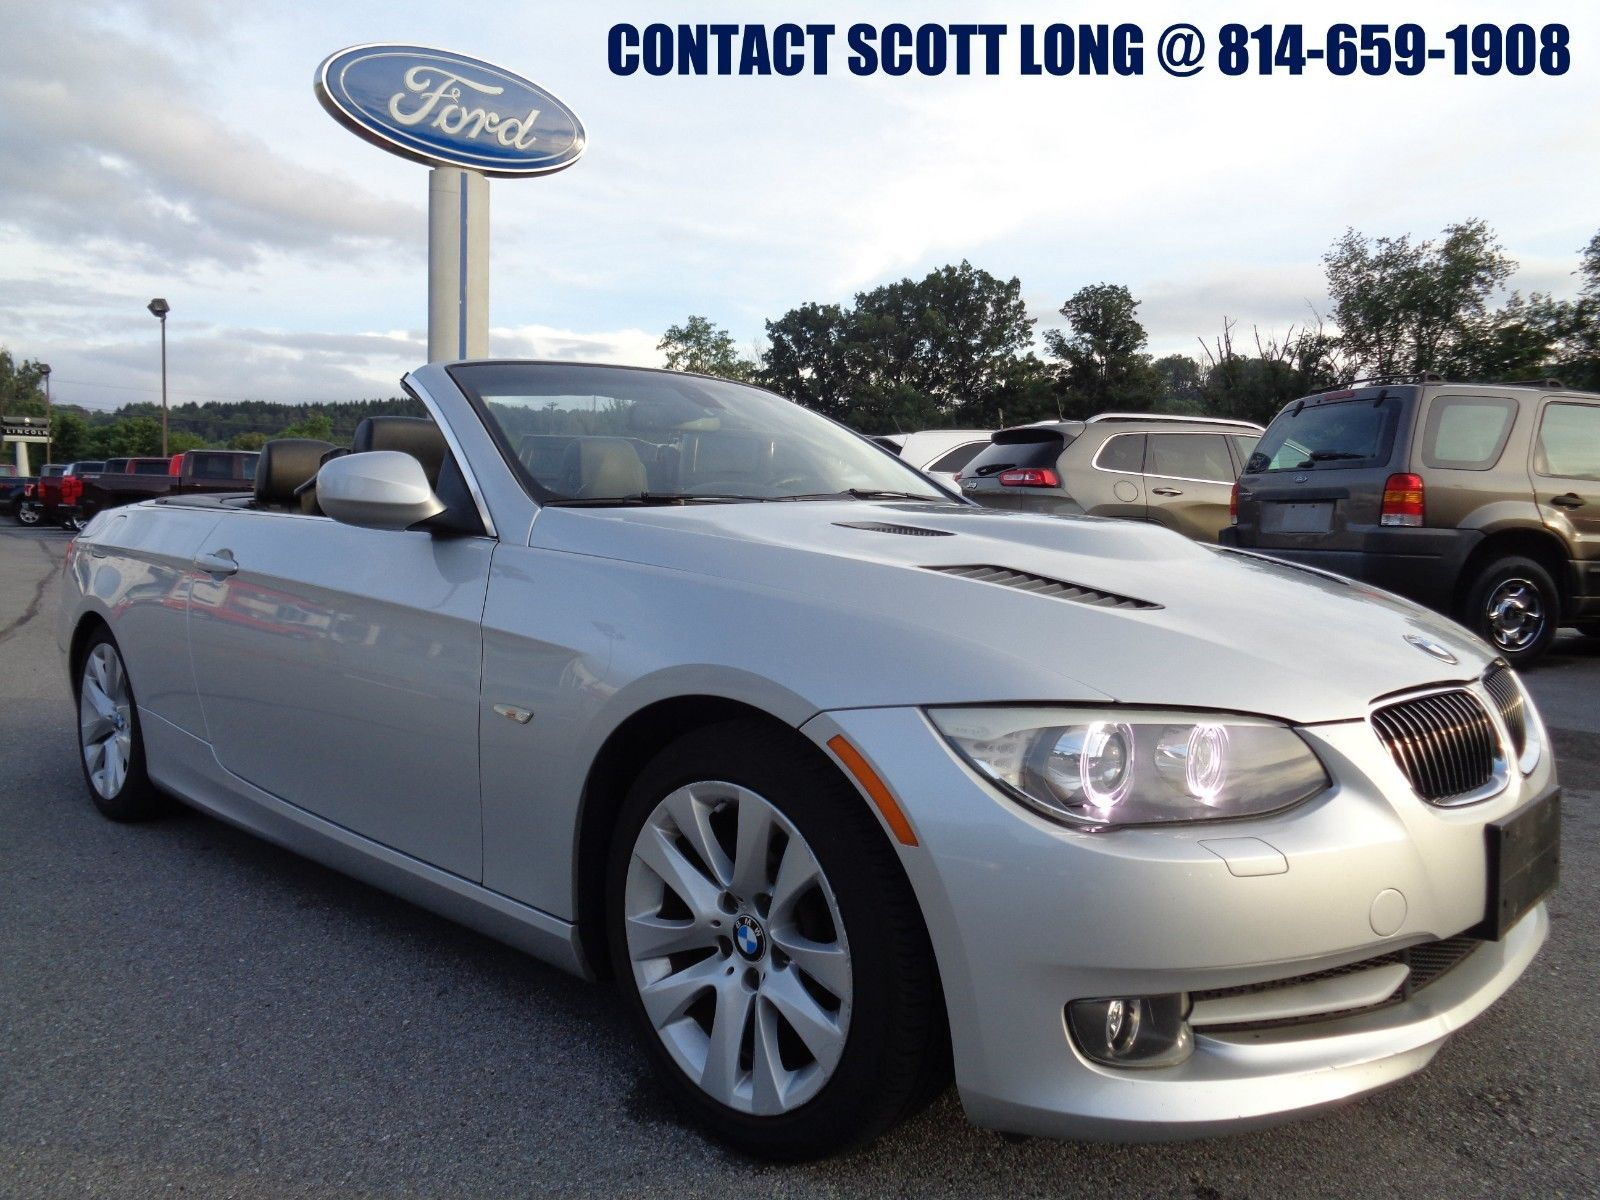 BMW 328I Convertible >> Awesome 2011 Bmw 3 Series 2011 Bmw 328i Convertible Nav Silver 2011 Bmw 328i Hard Top Convertible 3 0l Navigation Power Top Leather Seat Silver 2019